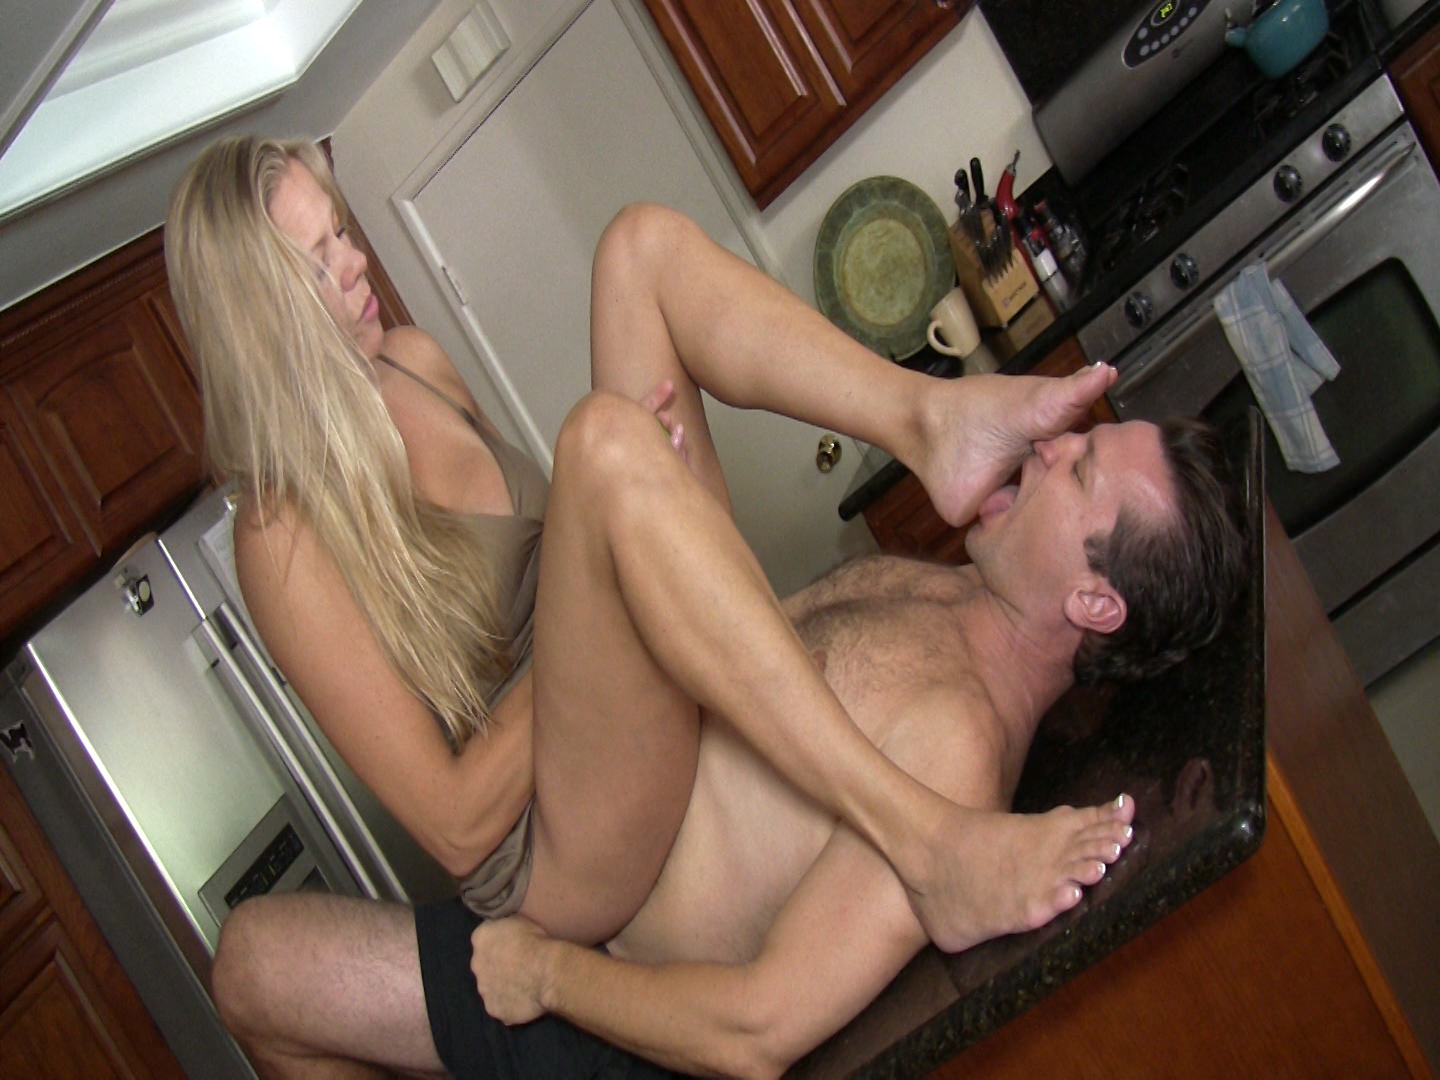 Porn tube Shared grannies amateur pissing